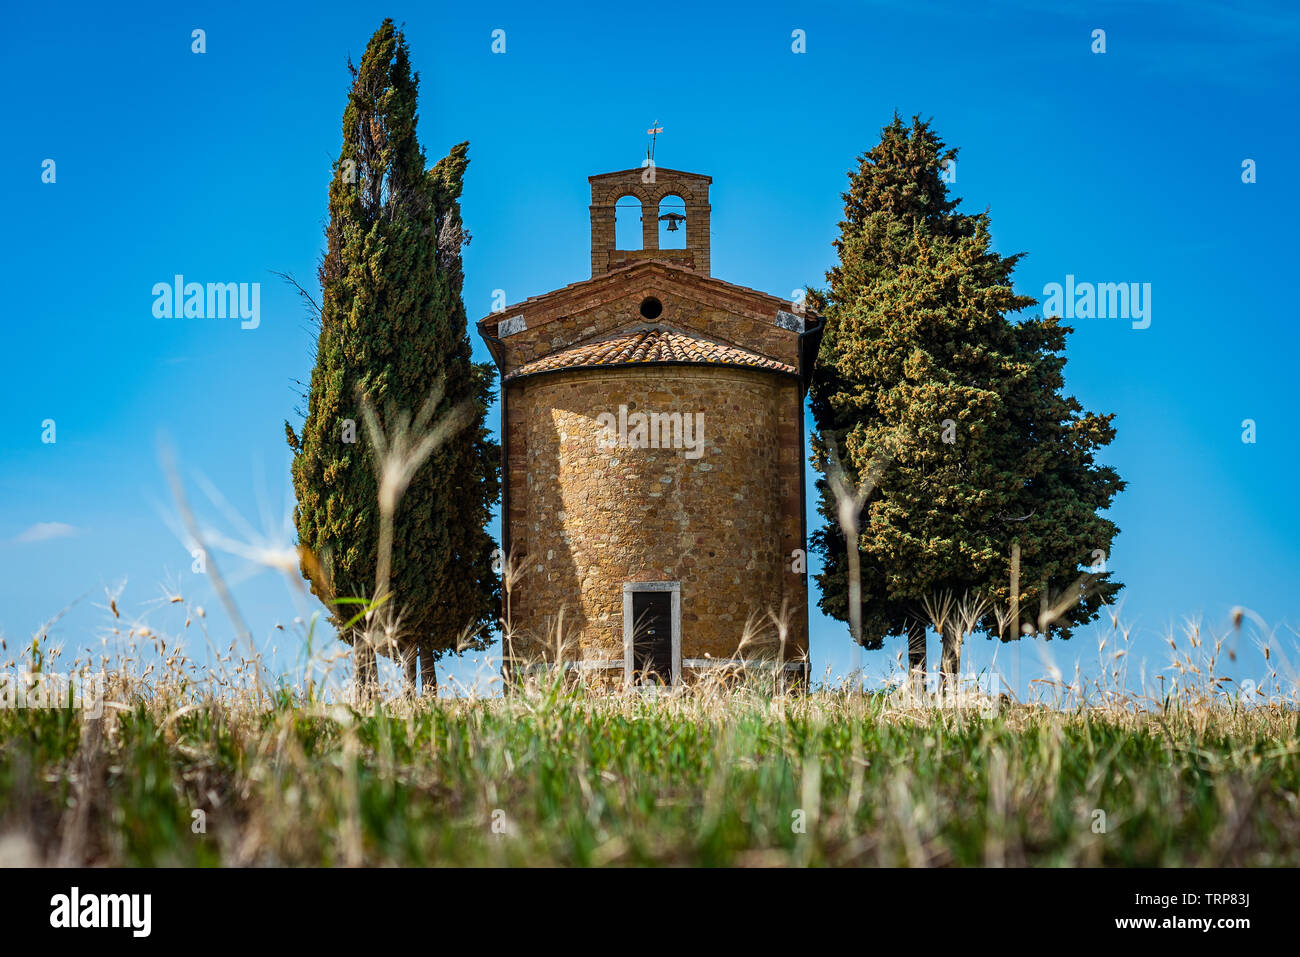 Chapel of the Madonna di Vitaleta, near the road connecting San Quirico d'Orcia and Pienza, in the Val d'Orcia, Tuscany, Italy. - Stock Image